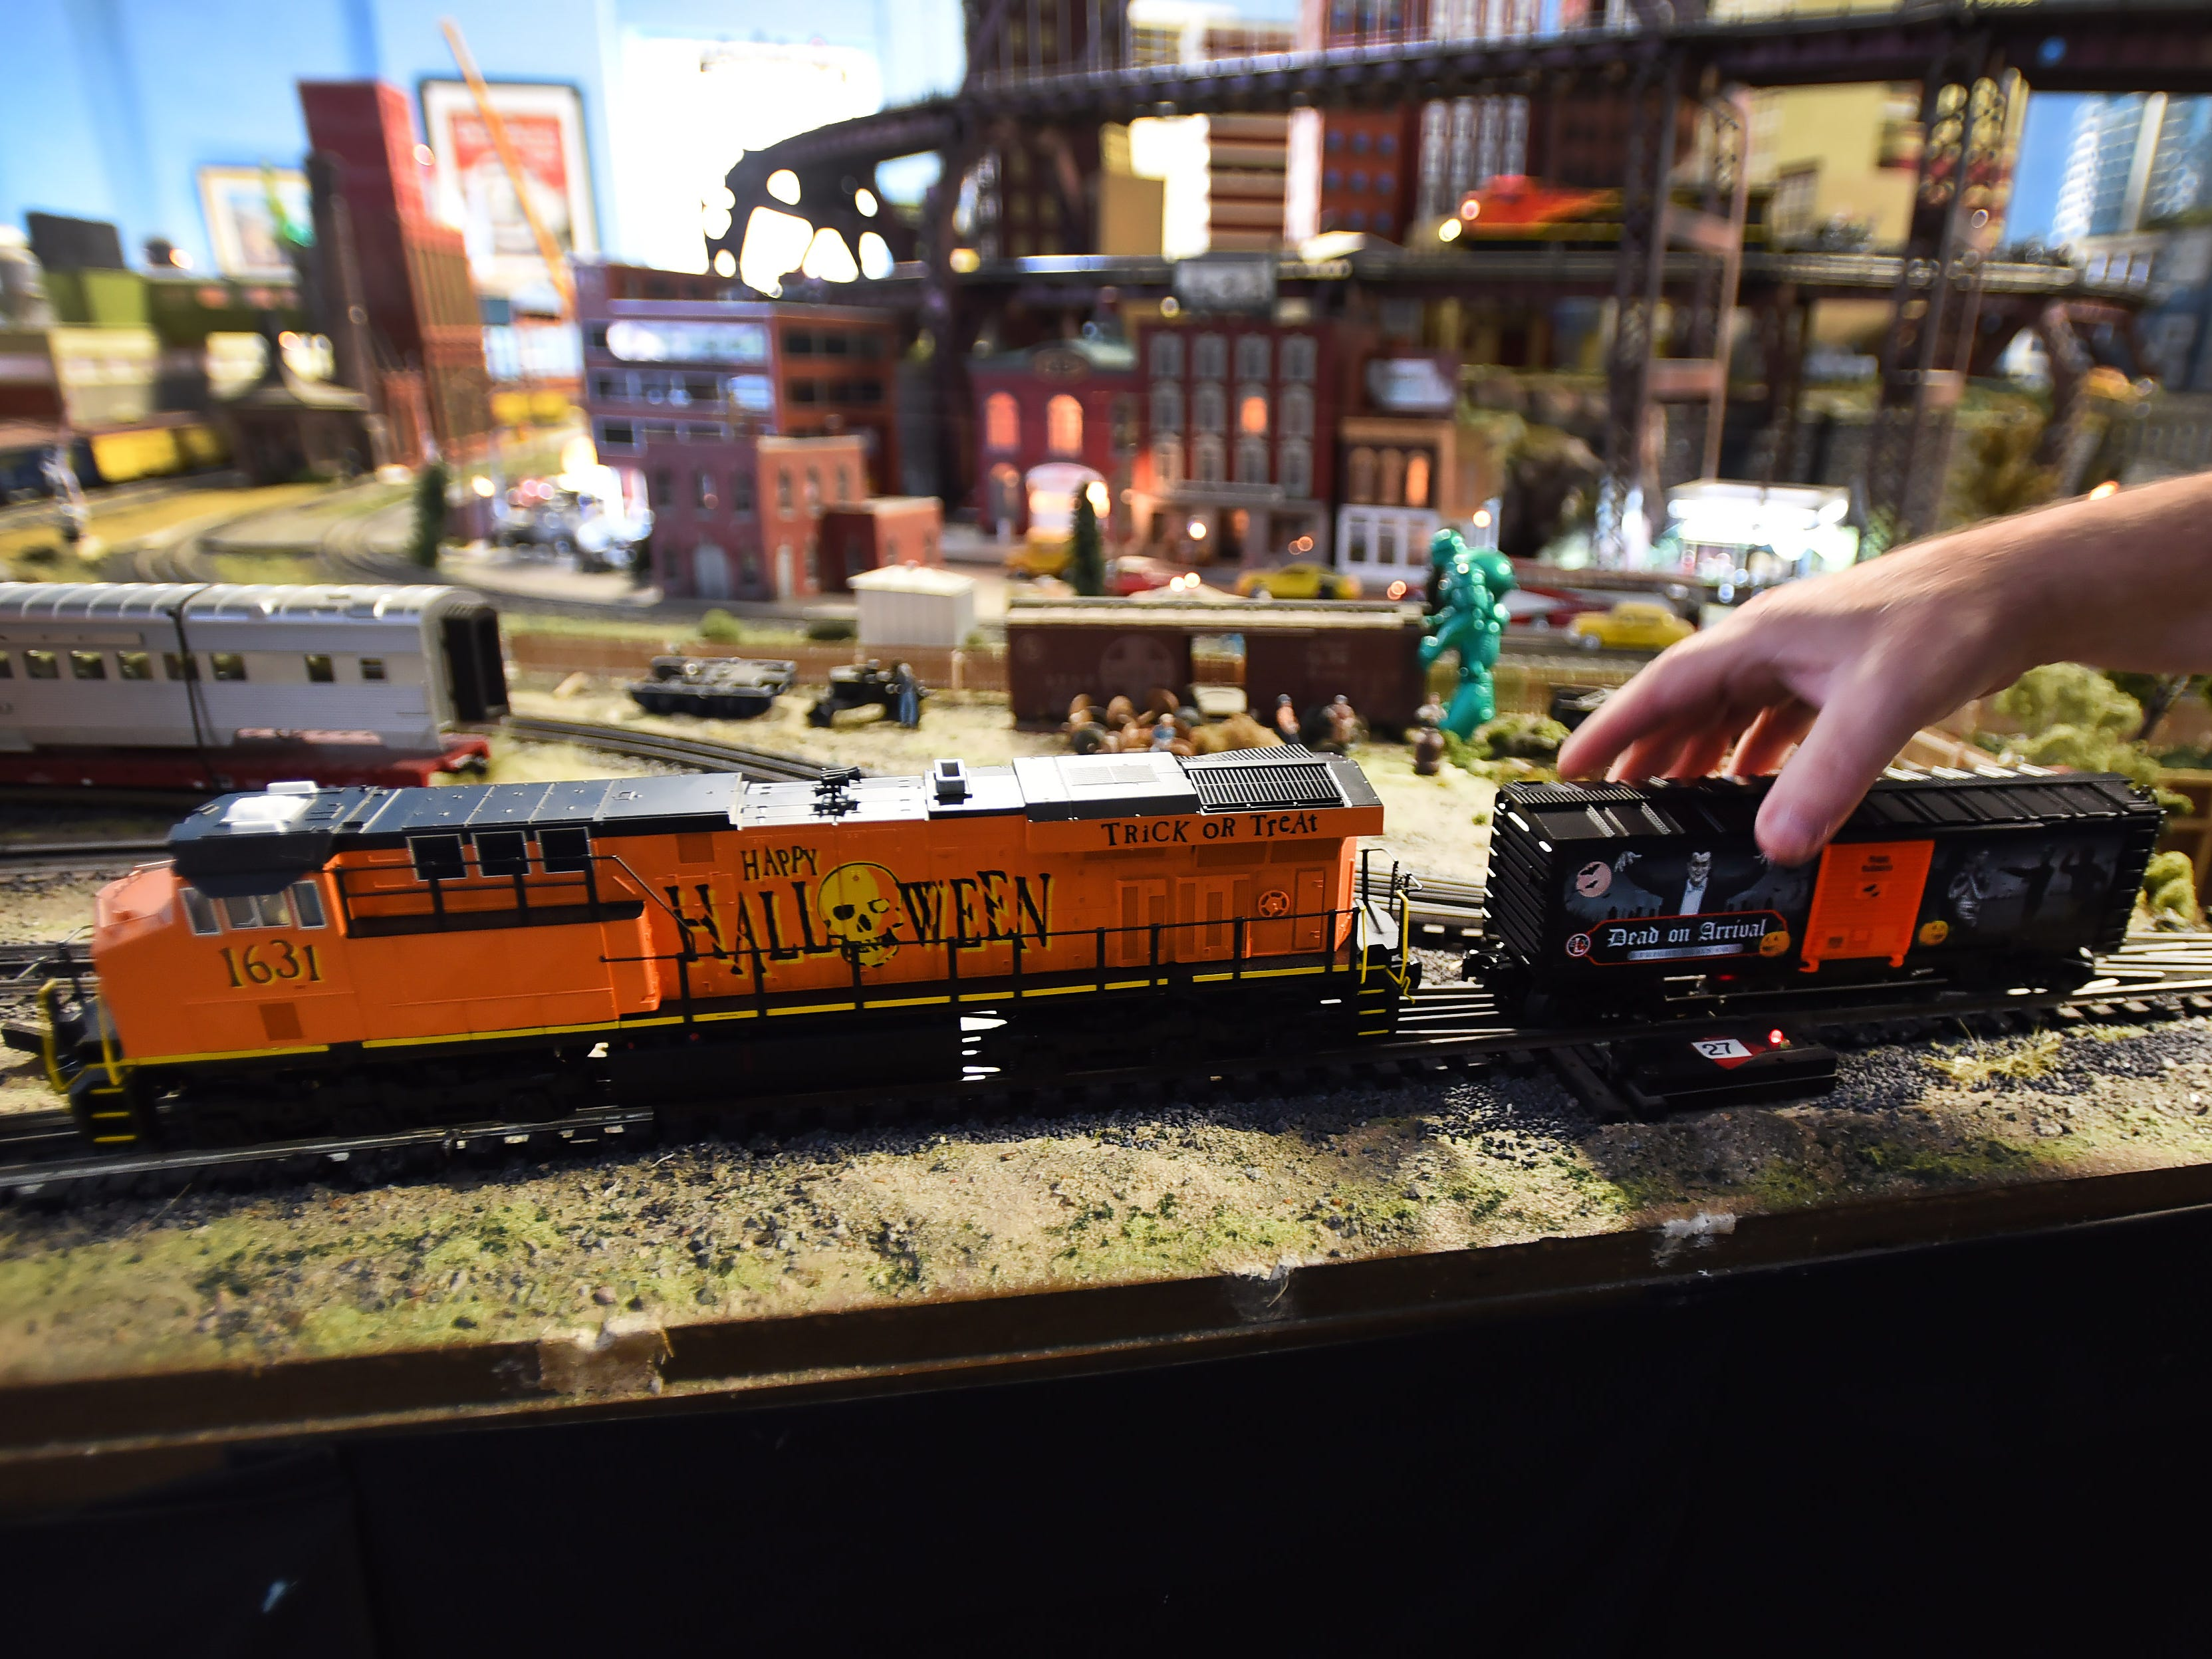 Robert Cafaro (not shown), a member of the NJ Hi-Railers Club, shows the Halloween trains during a show for the public at Silk City Station in Paterson on 10/28/18.